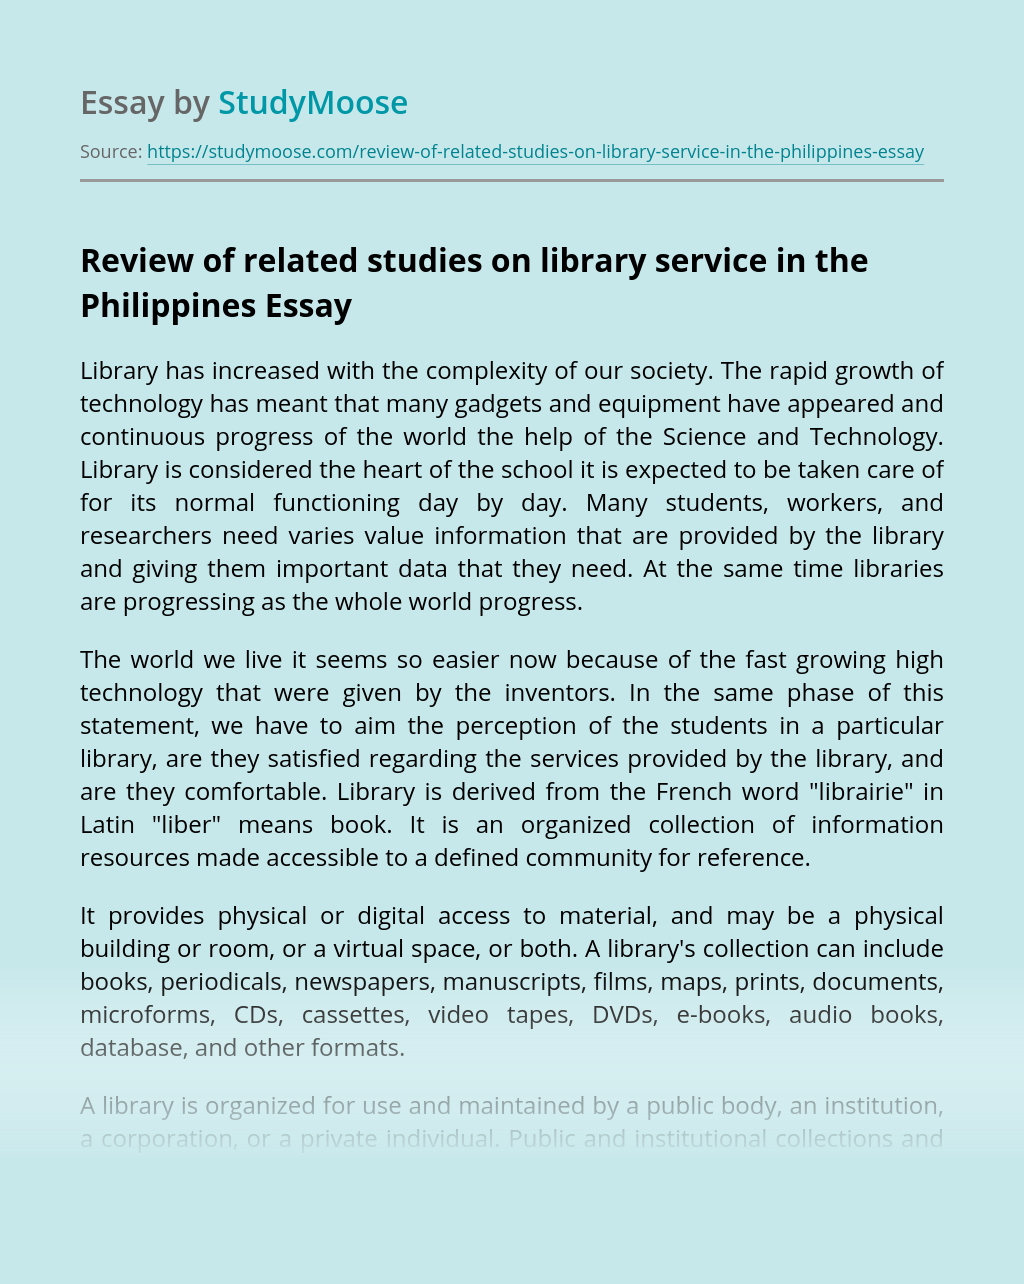 Review of related studies on library service in the Philippines